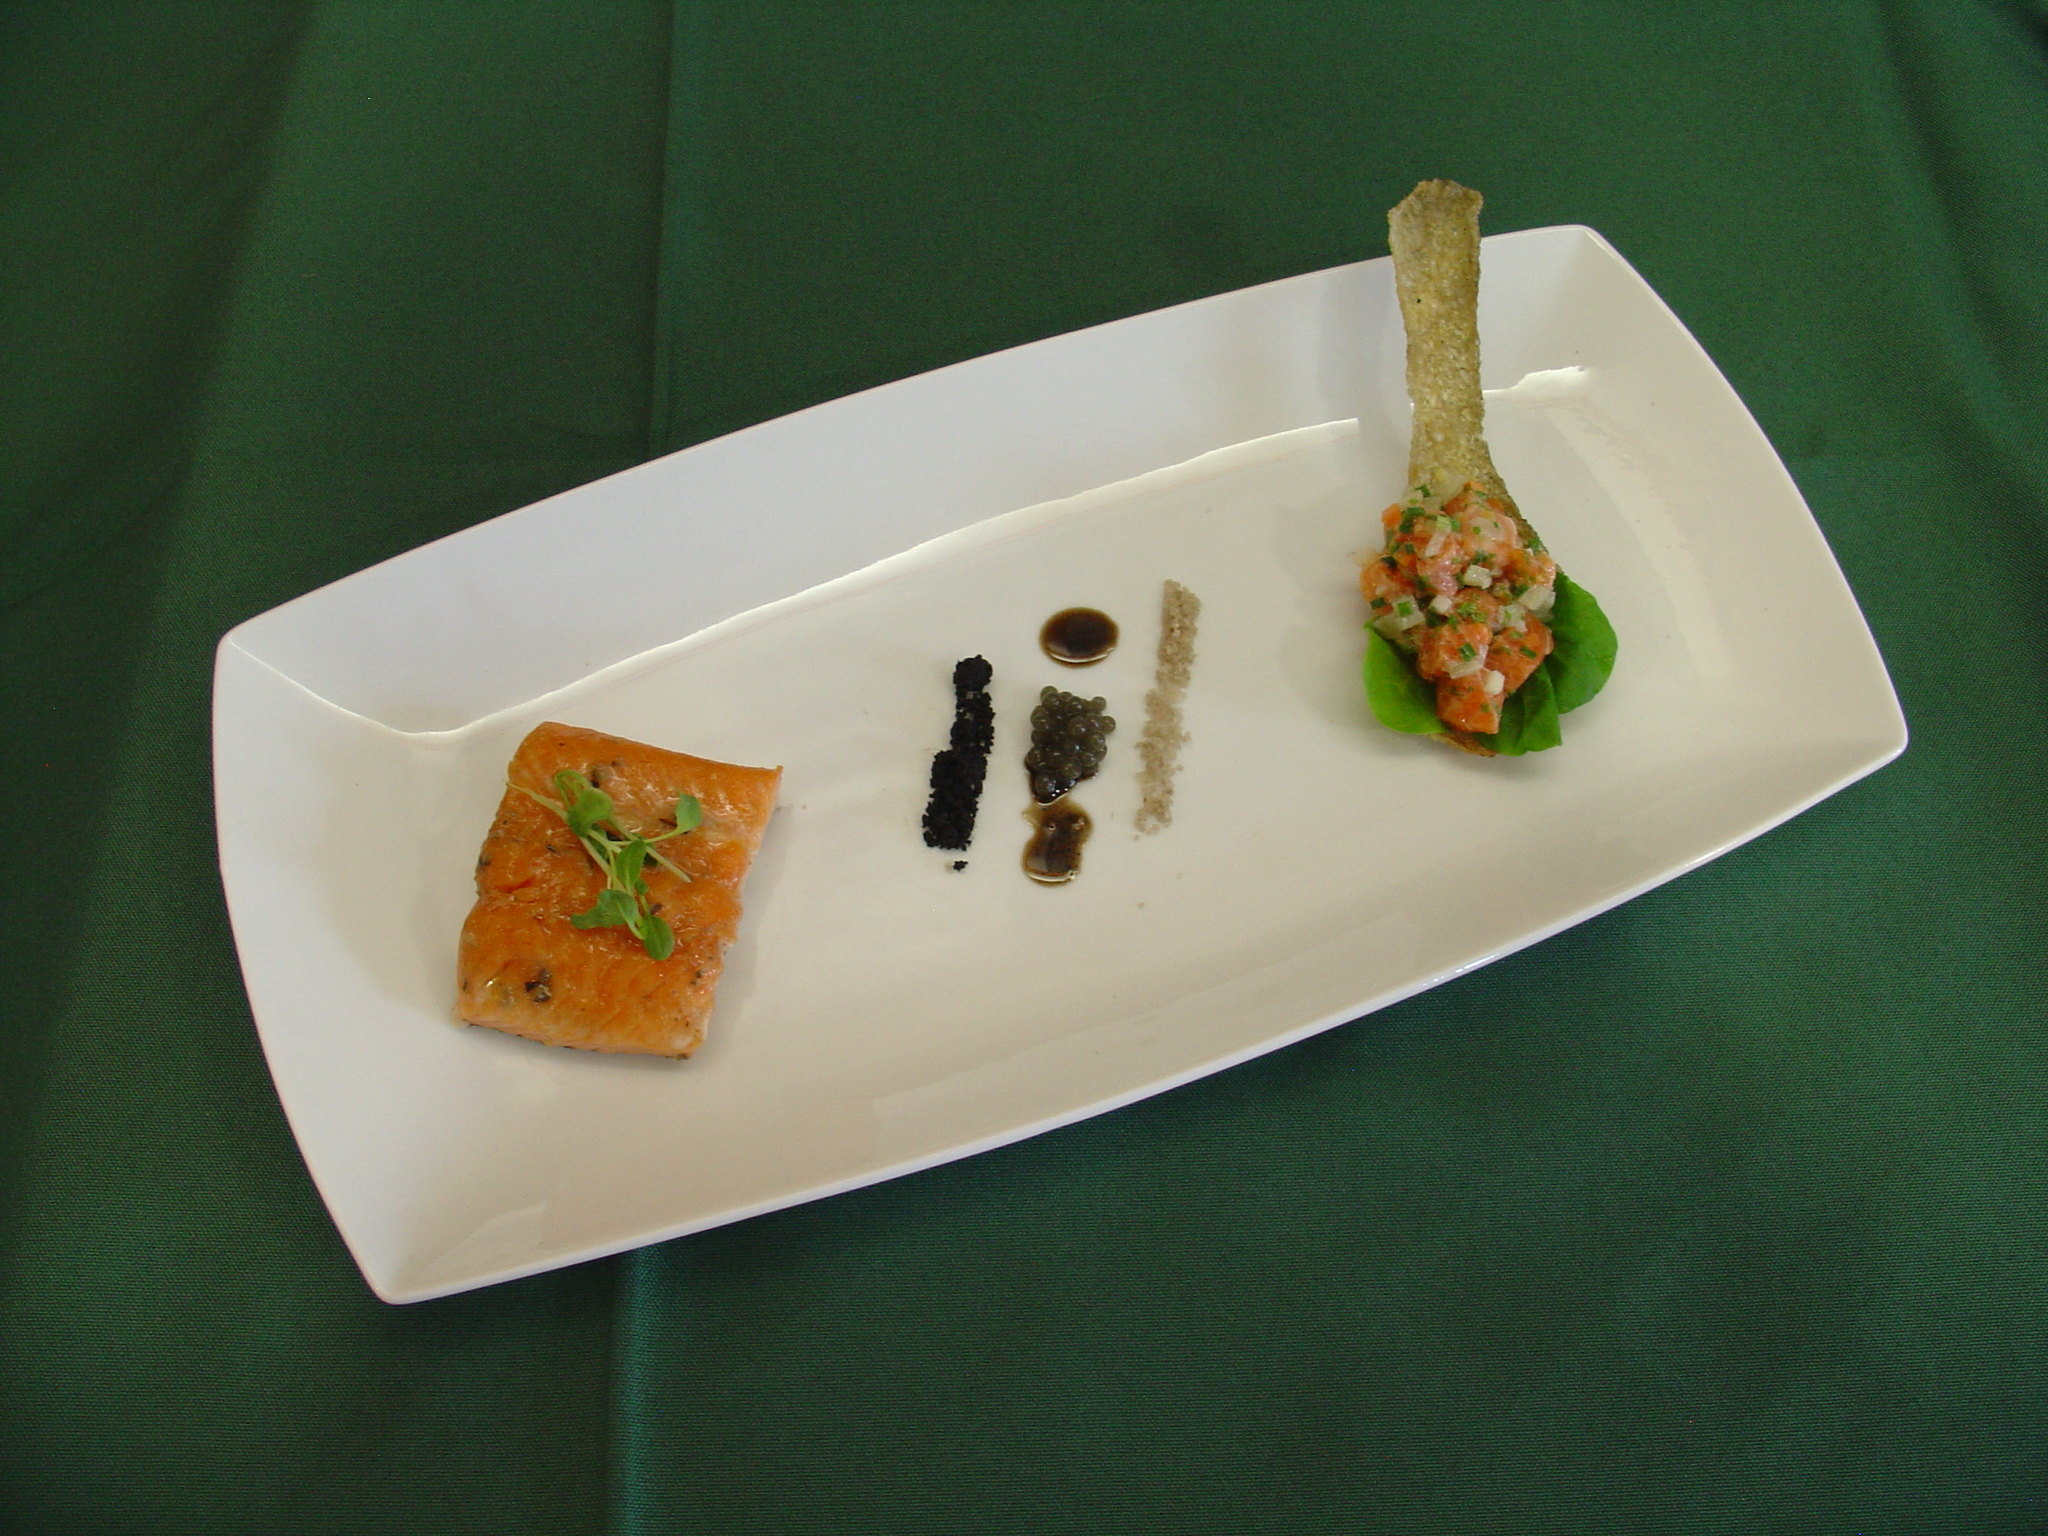 Appetizer - Gold Medal 2009